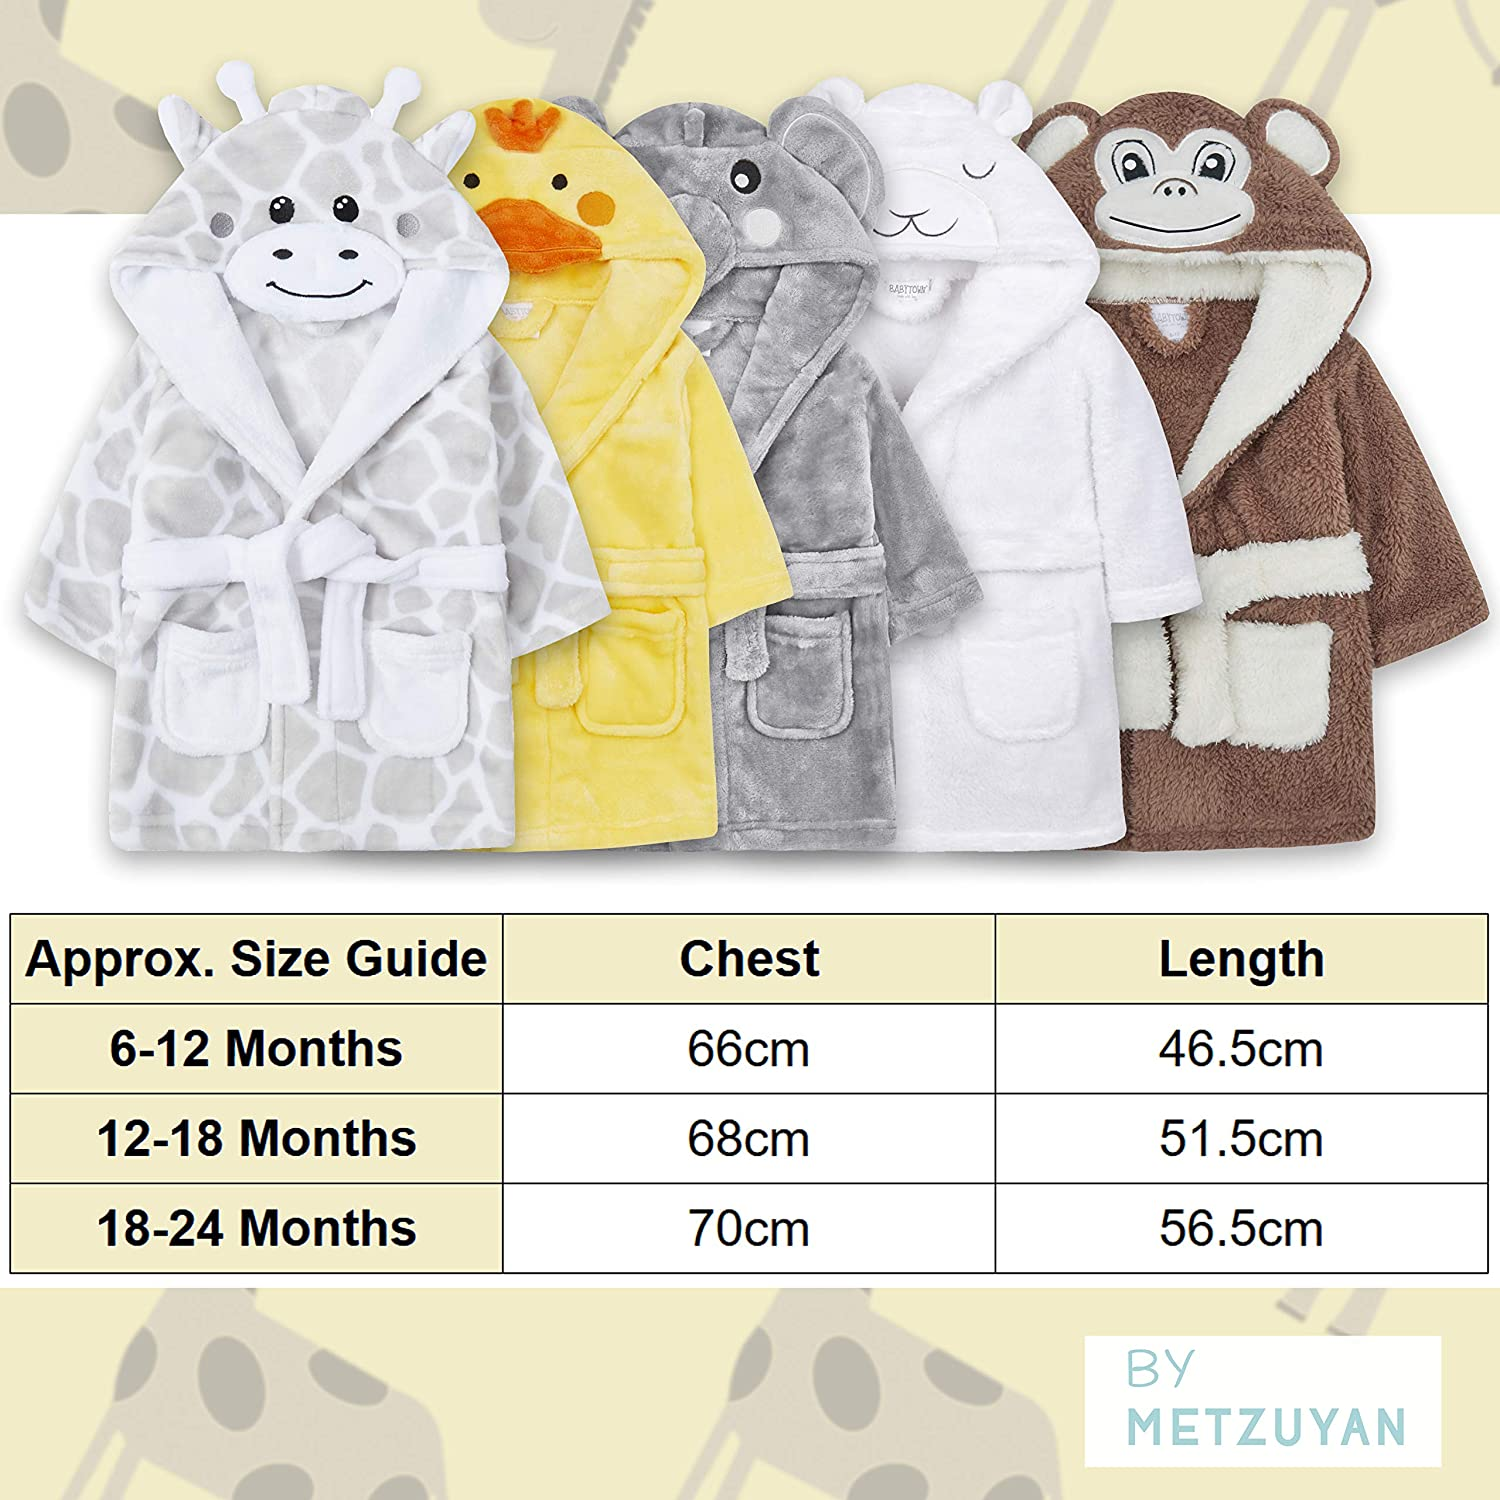 Metzuyan Baby Girls /& Boys Animal Themed Plush Fleece Unisex Dressing Gown Robe